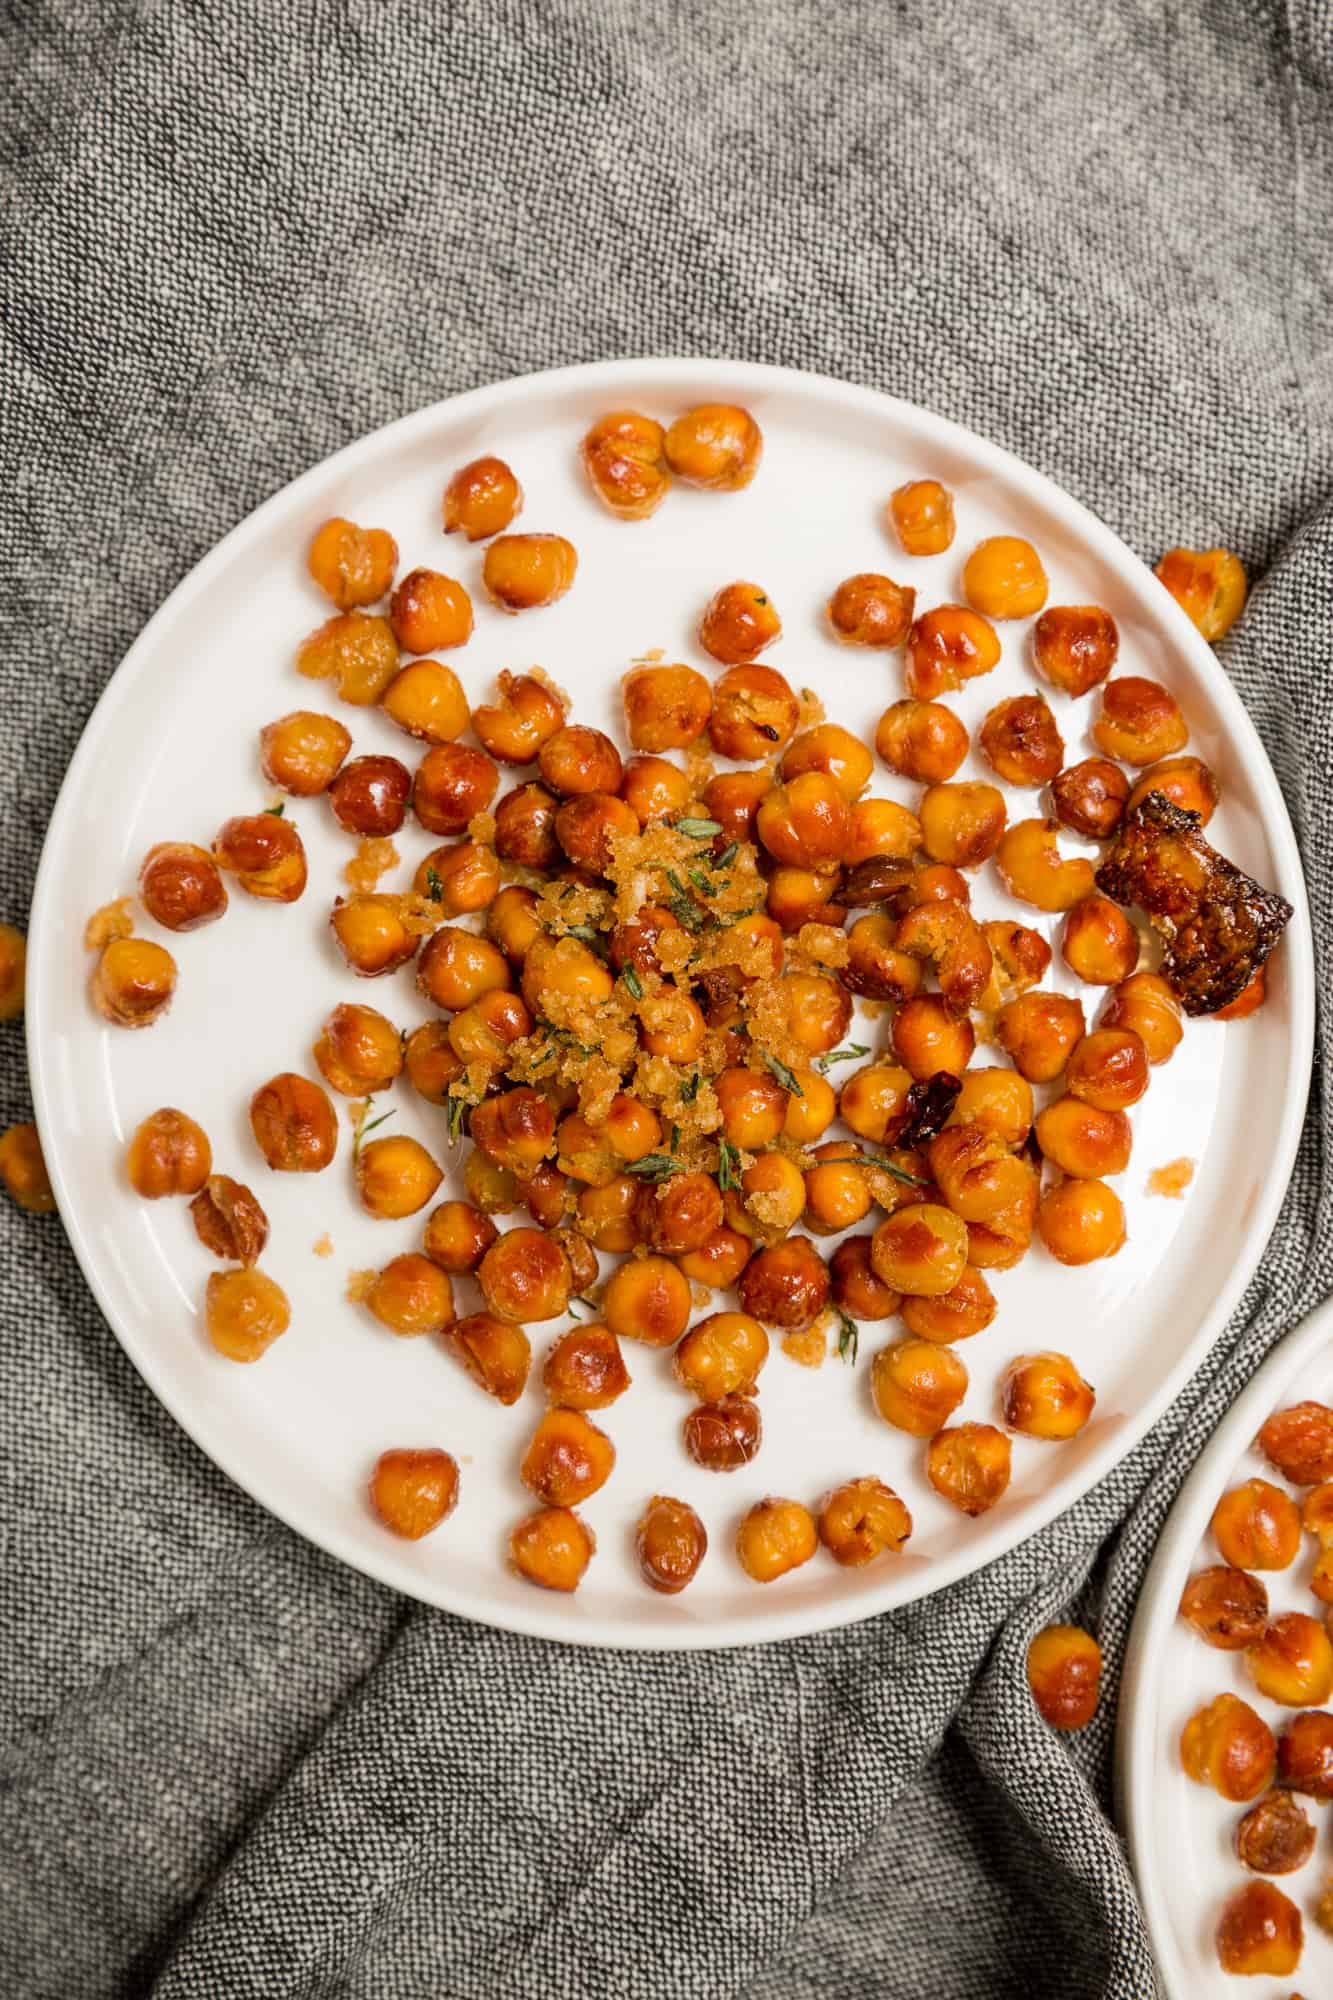 Roasted Chic Peas